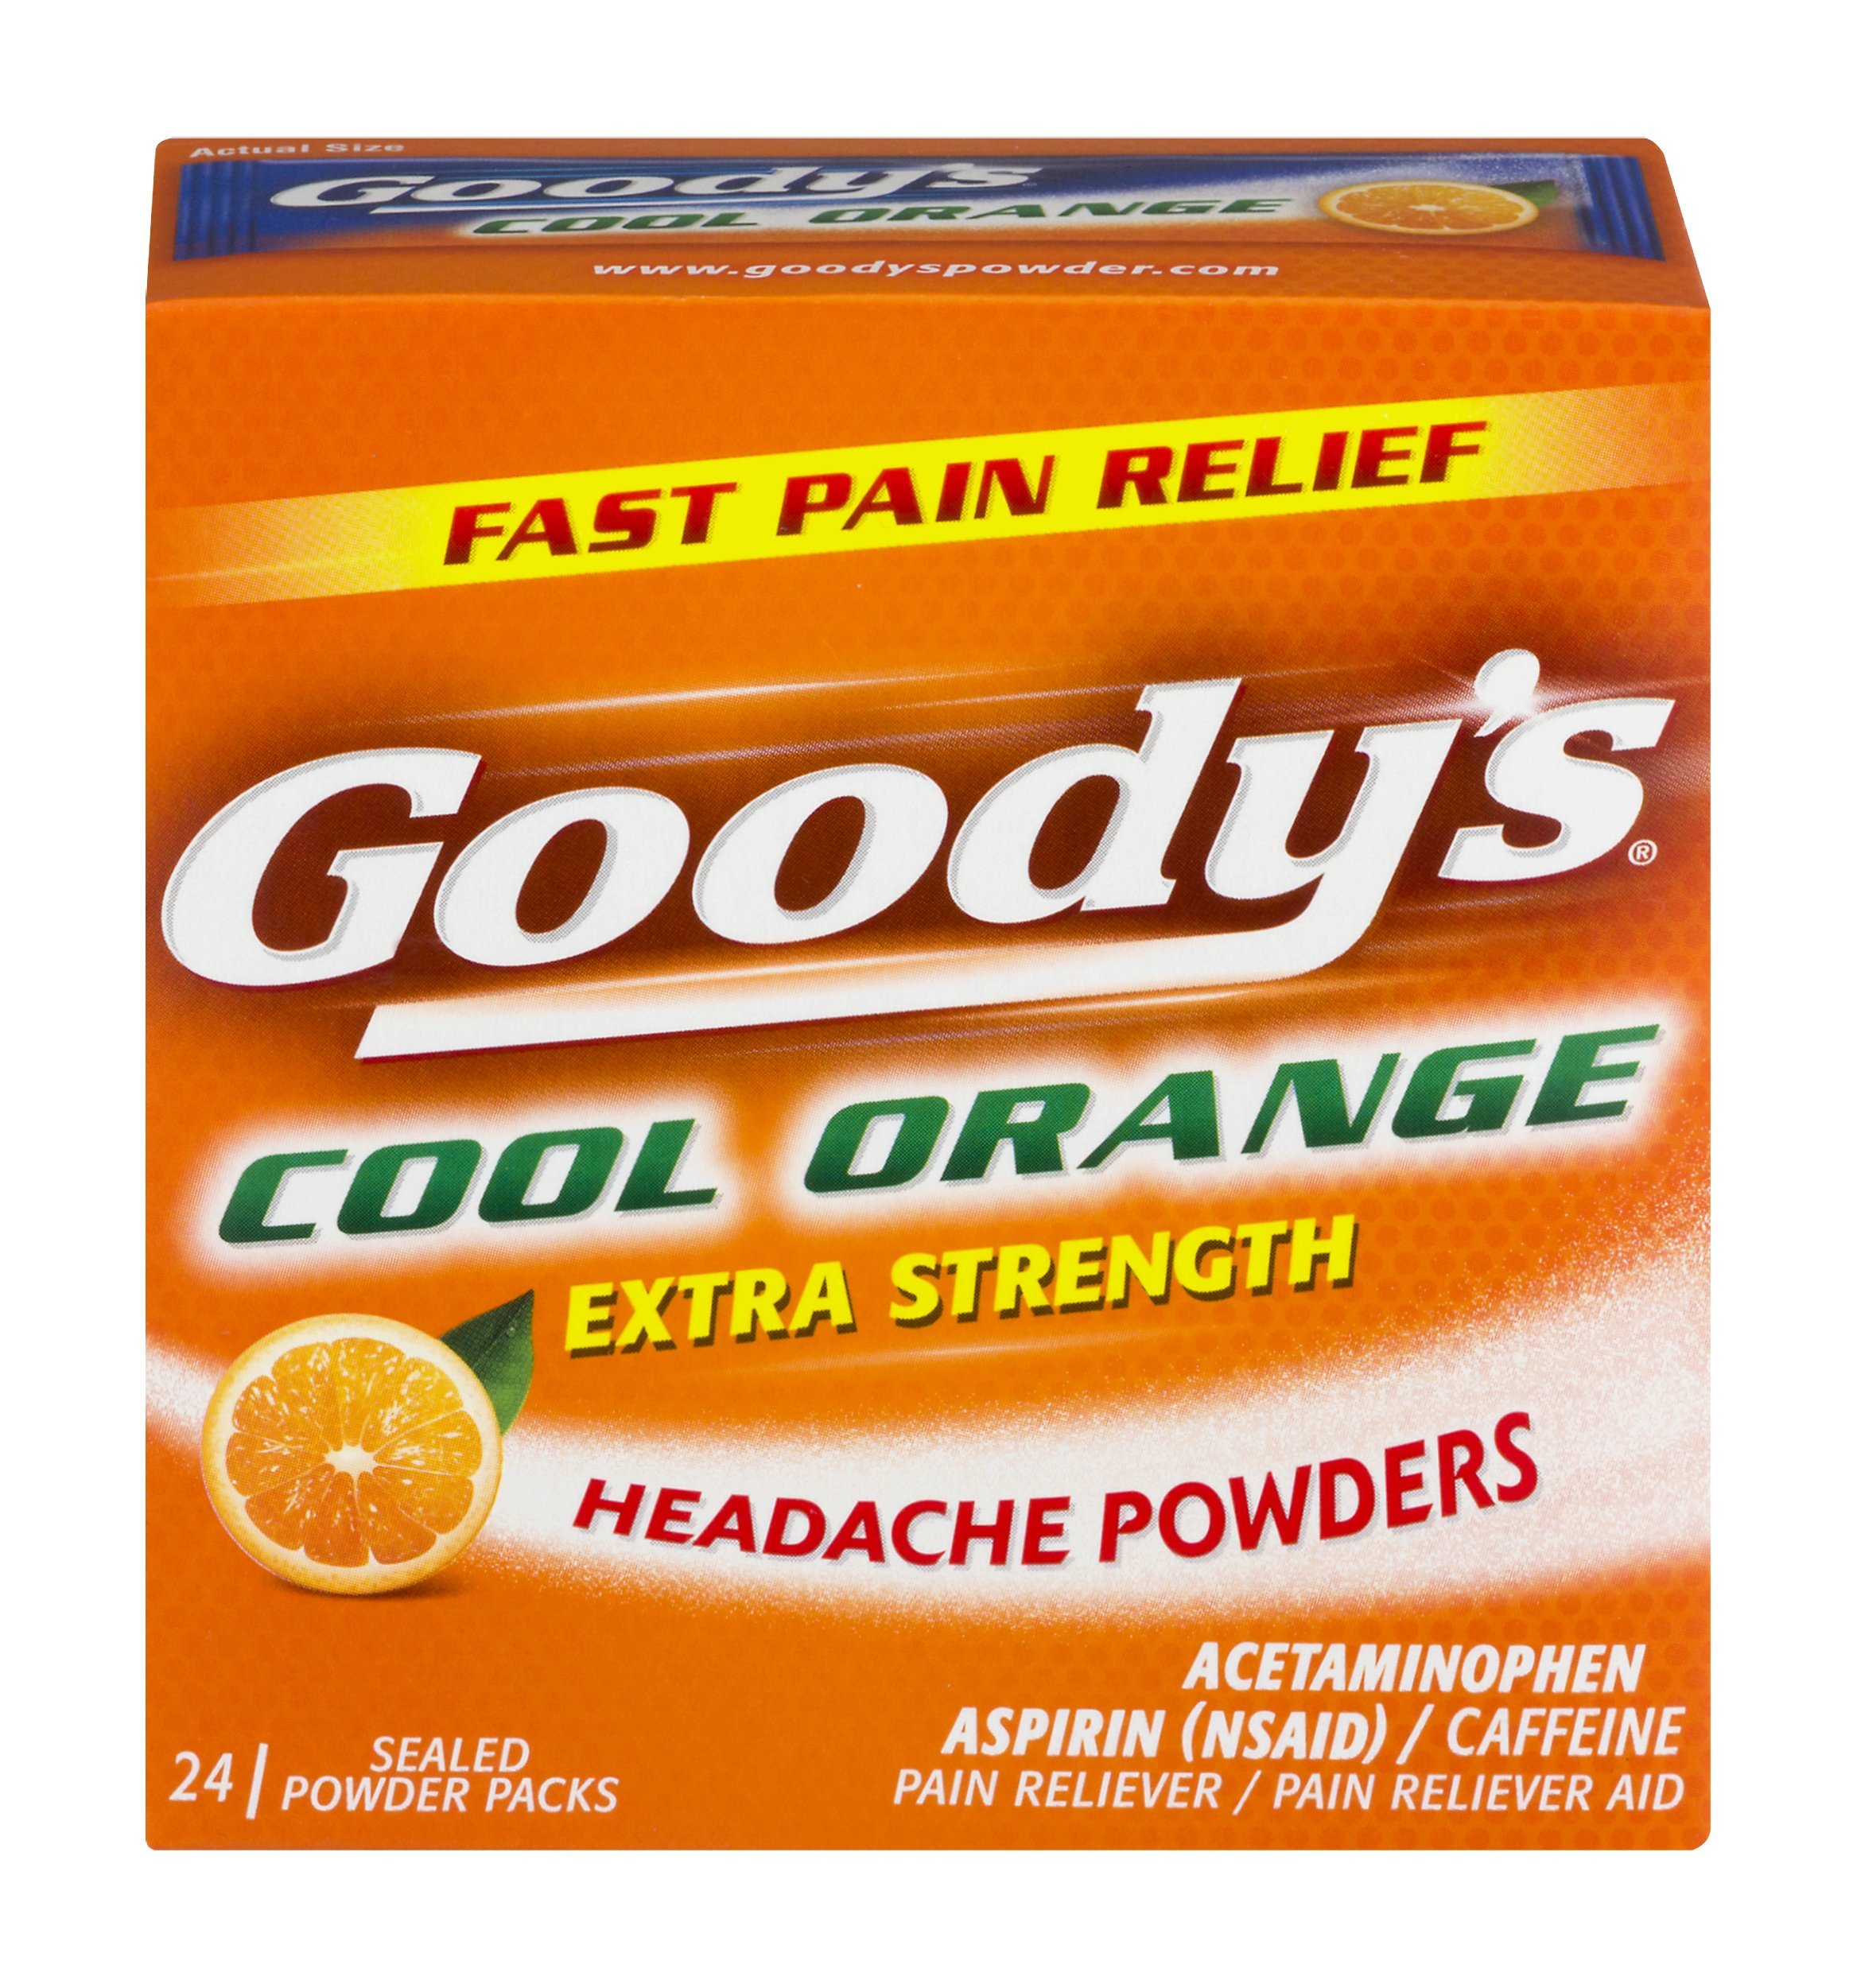 Goody's Extra Strength Fast Pain Relief Powder - Acetaminophen, Aspirin, & Caffeine Quickly Relieve Pain Due to Headaches, Body Aches, and Fever - Cool Orange Flavor - 24 Powders